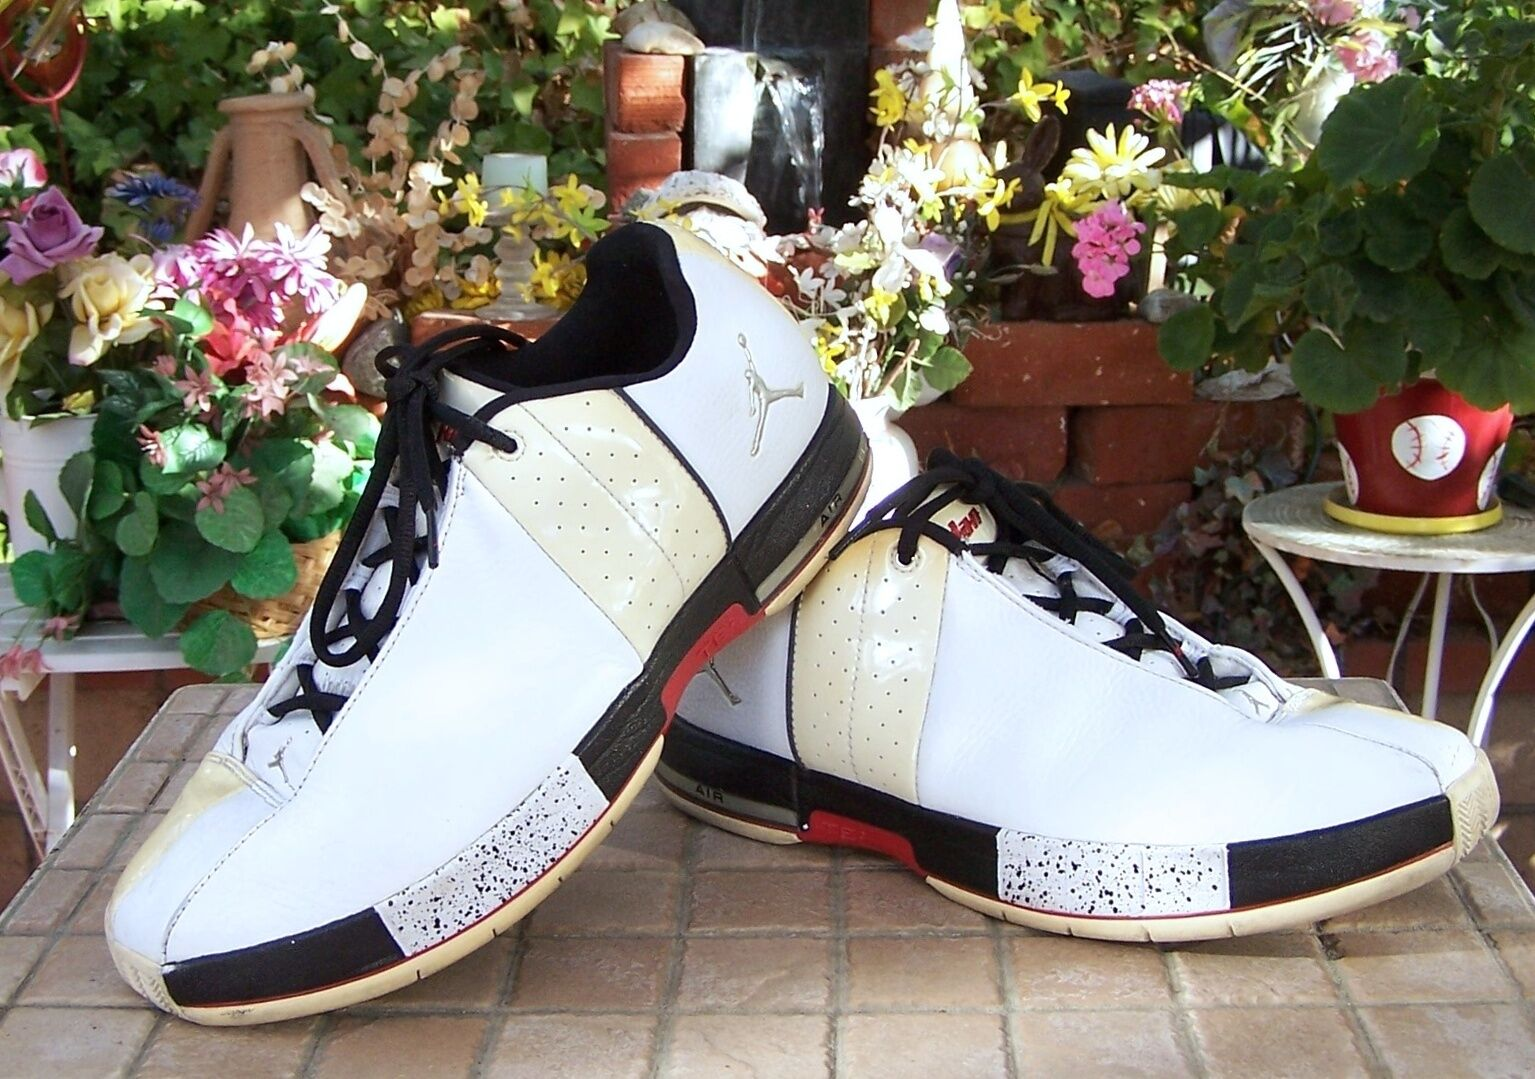 Nike Air Jordan Team Elite II Low White 2018 RARE Men's US Comfortable Seasonal price cuts, discount benefits